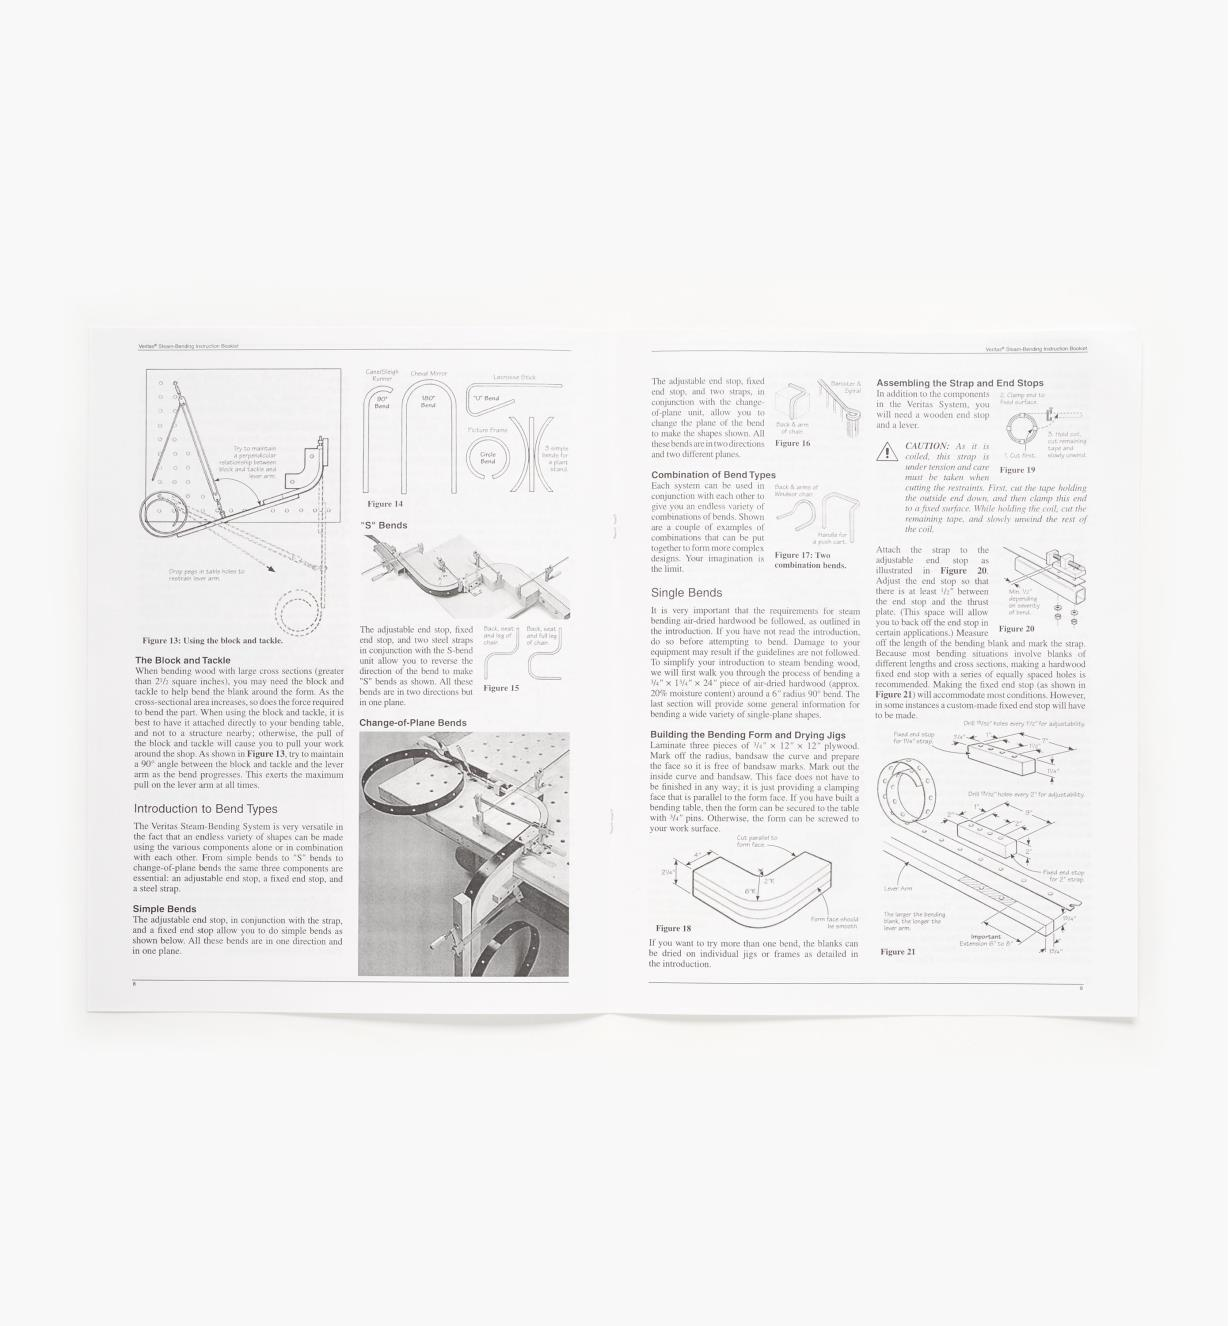 05F1501 - Steam-Bending Booklet